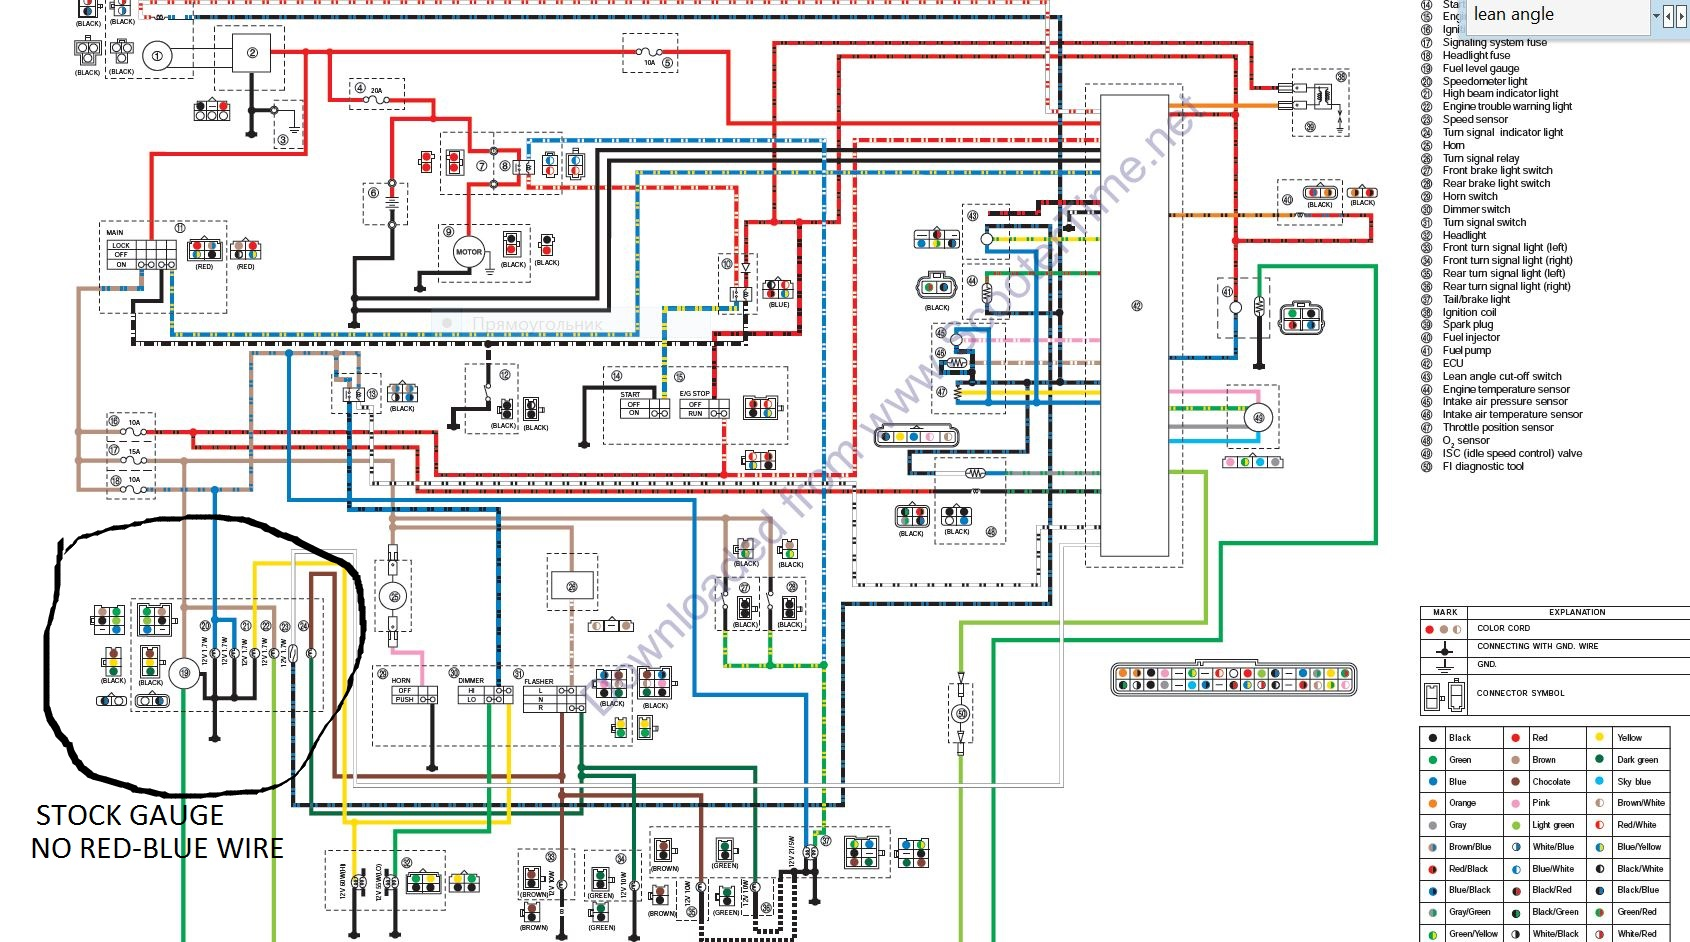 Wiring Yamaha X Vq30de Harness Diagram Schematic 2008 R1 Hight Resolution Of Zuma For You Vino